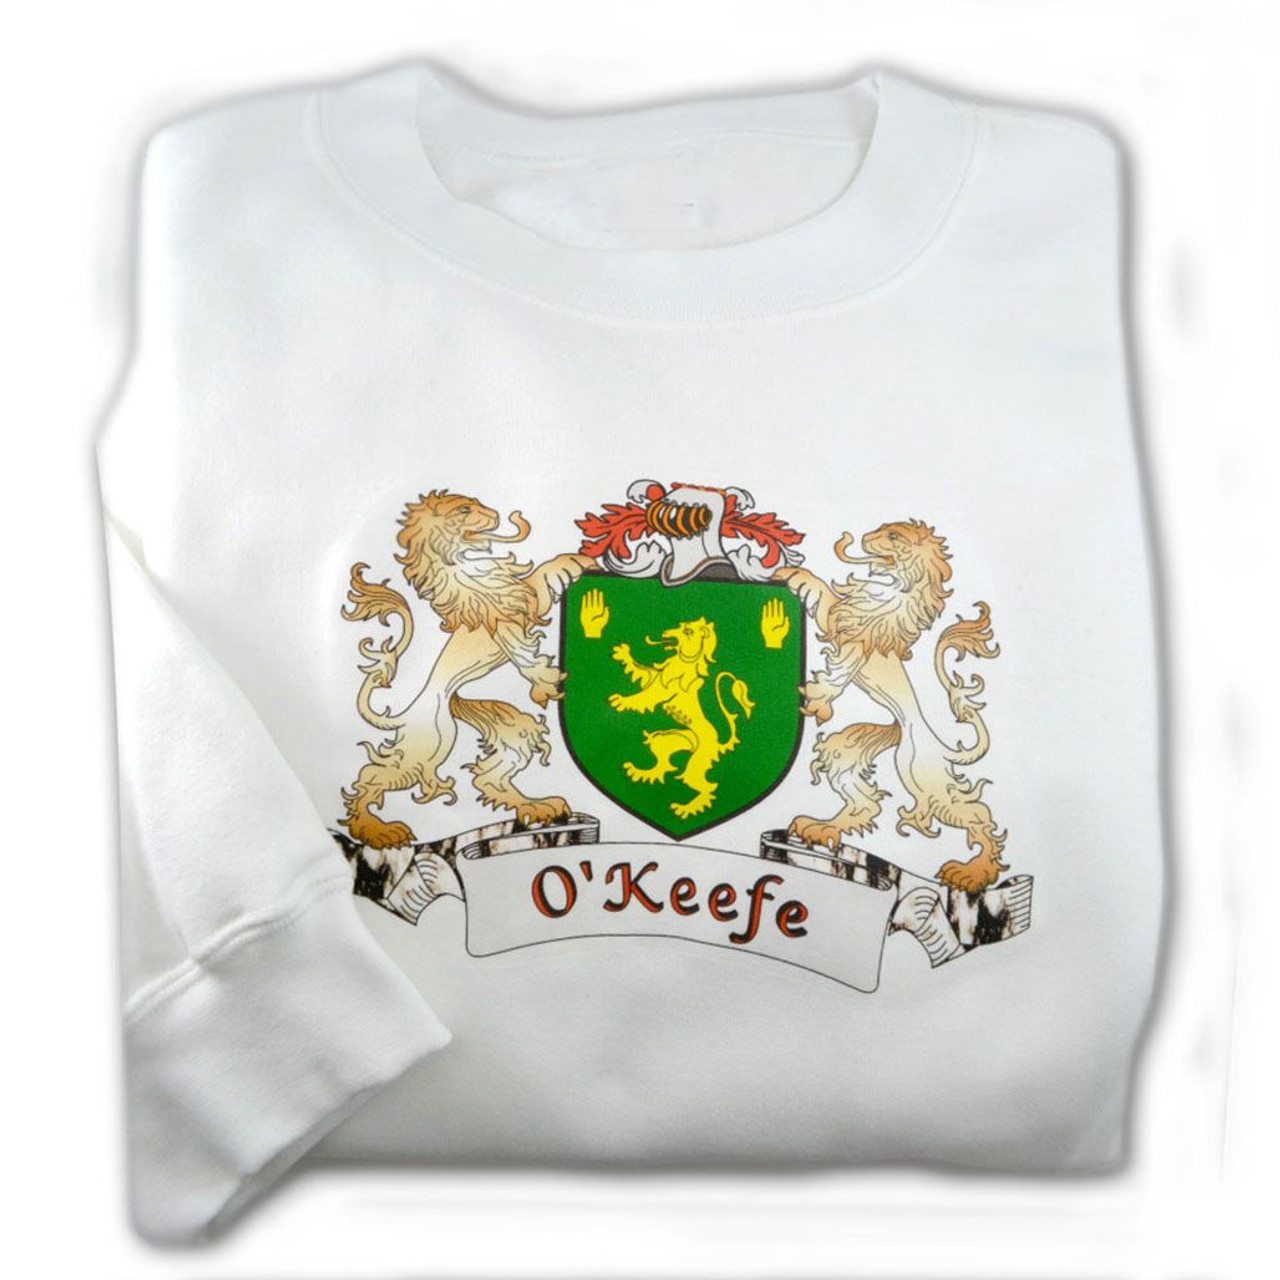 Personalized White Sweatshirt with Family Name Coat of Arms